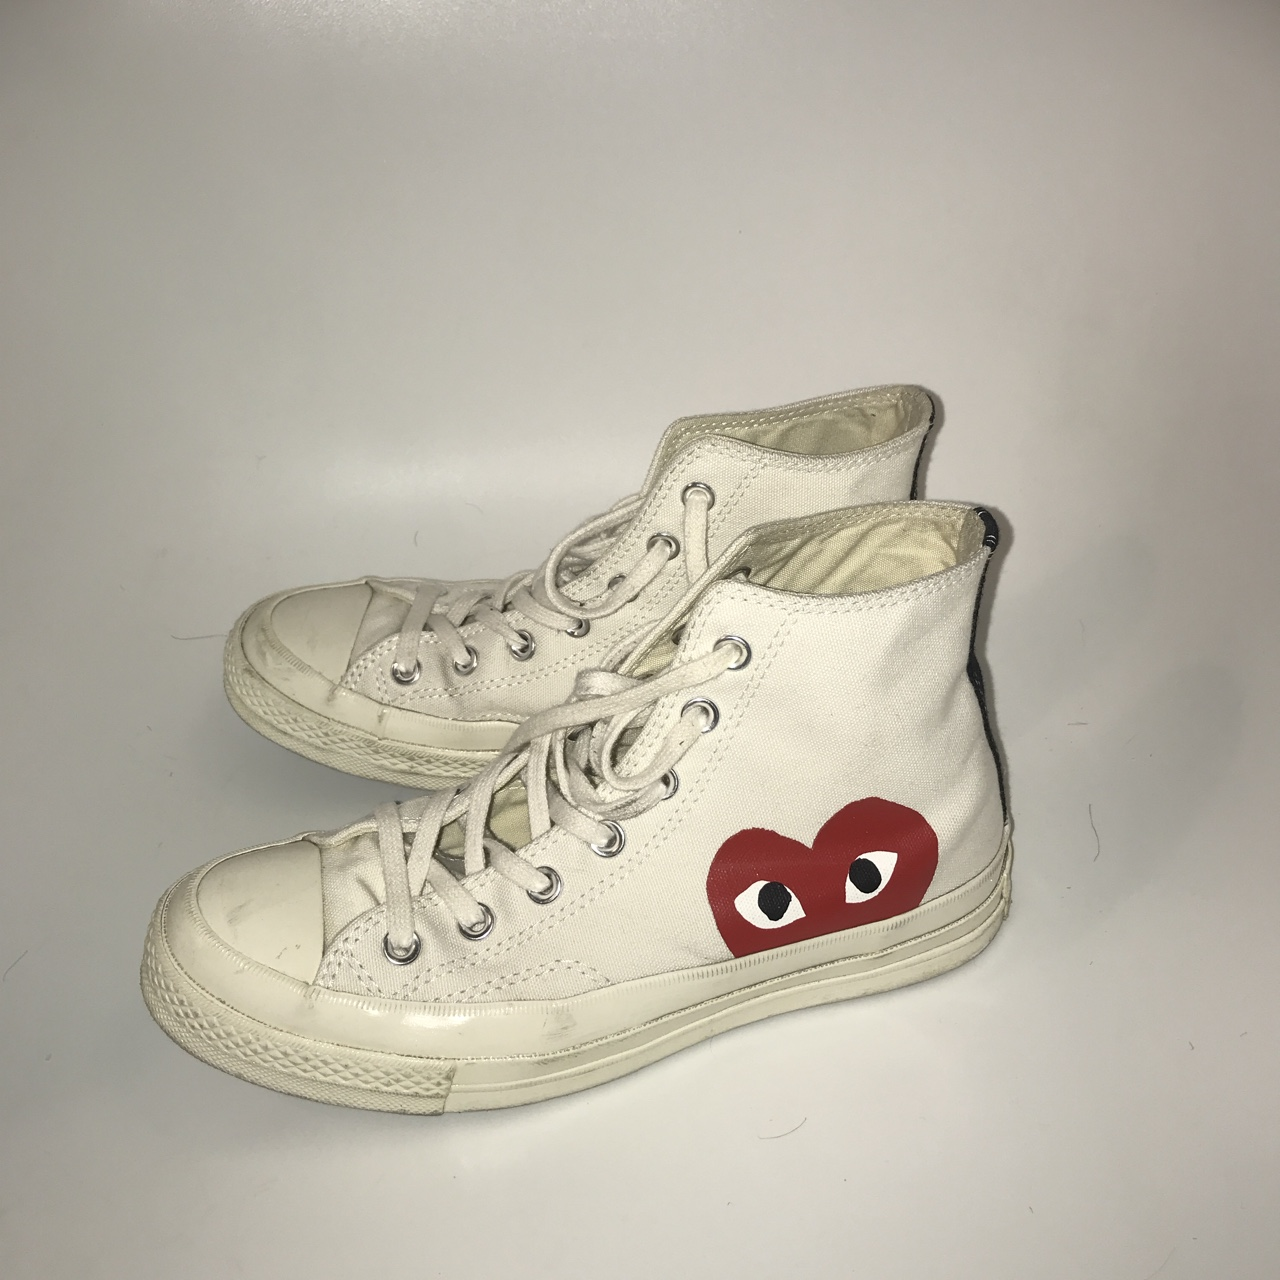 CDG Converse white high tops in great